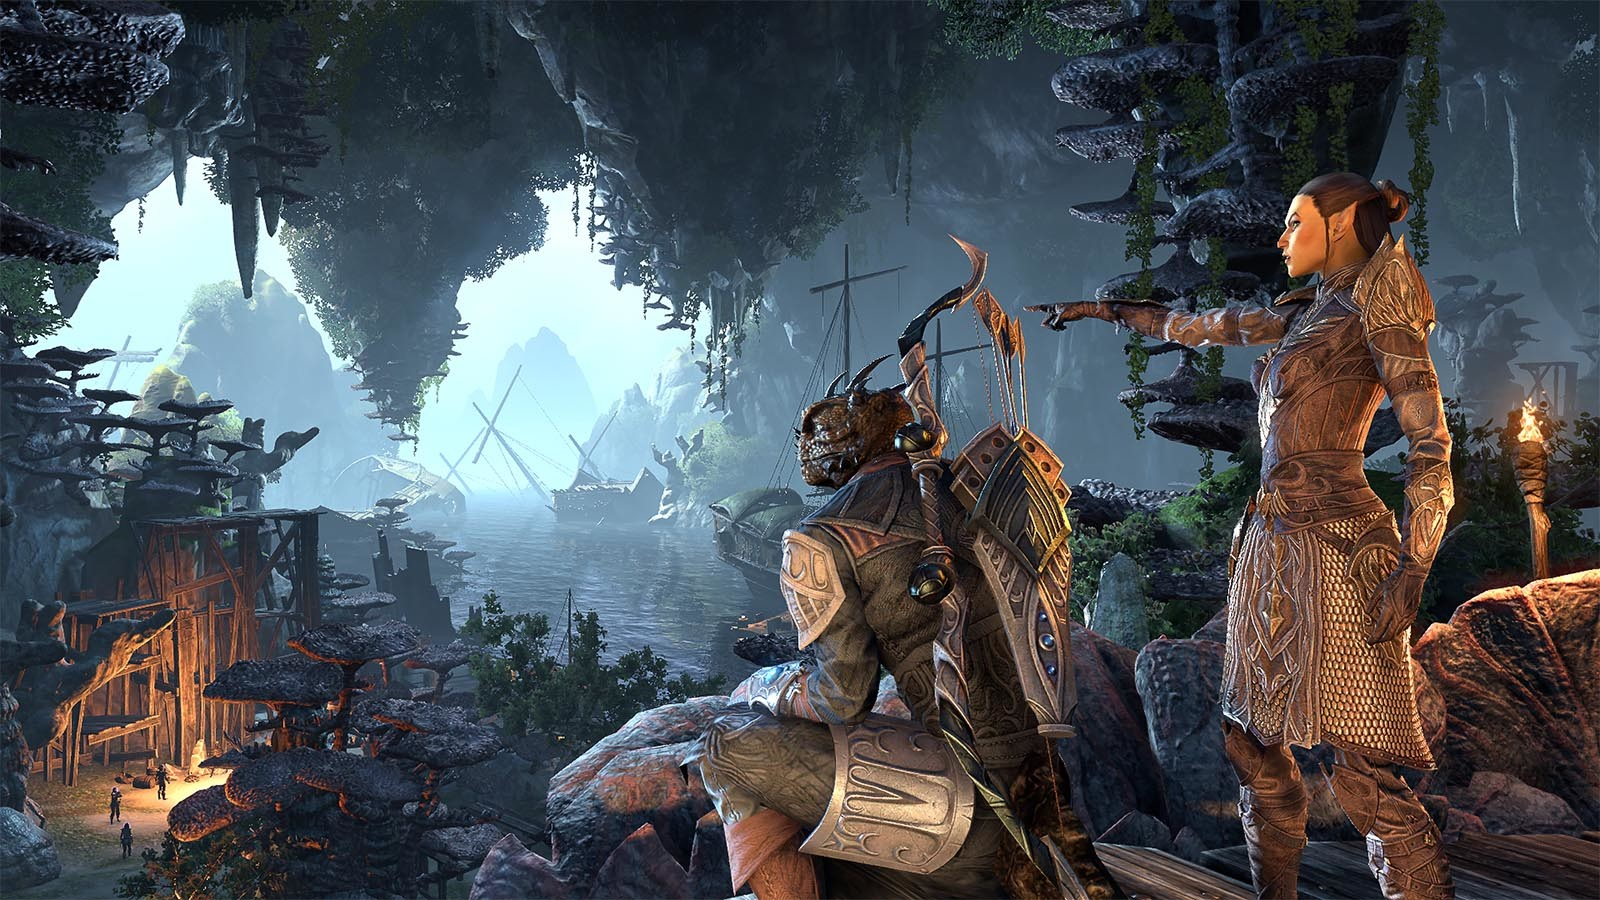 The Elder Scrolls 6 Release Date and More Updates